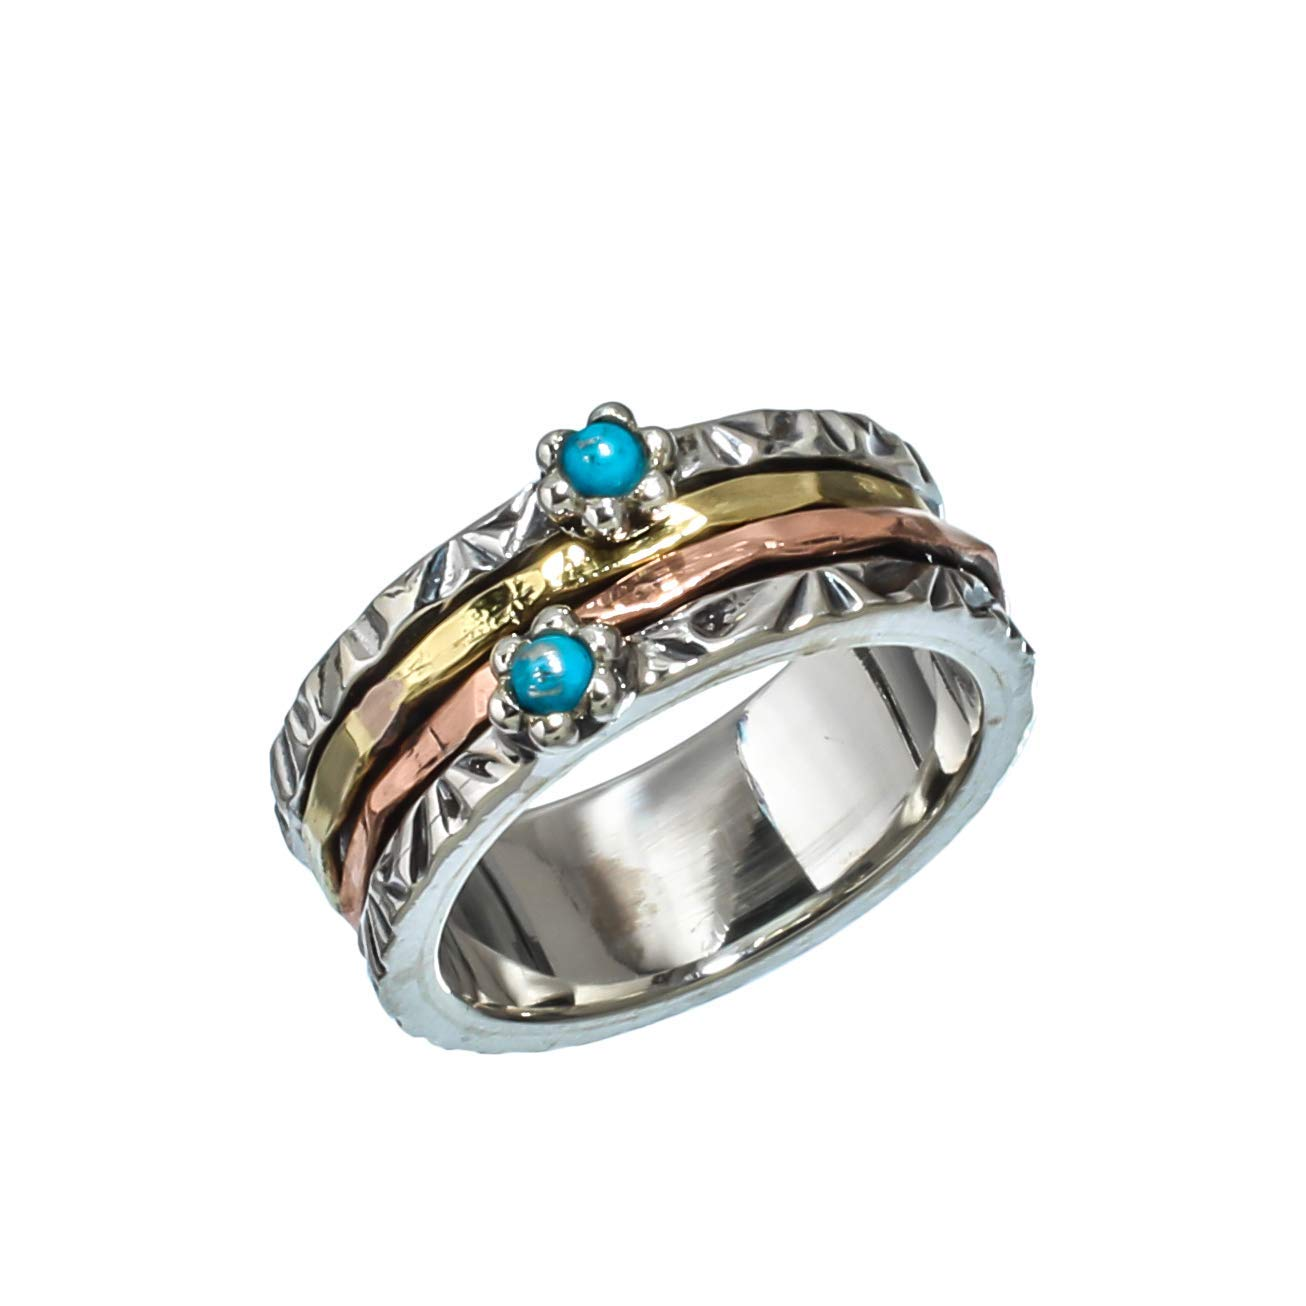 Kanika Jewelry Trove Sleeping Beauty Turquoise Vintage Style Sterling Silver Jewelry Spinner Ring